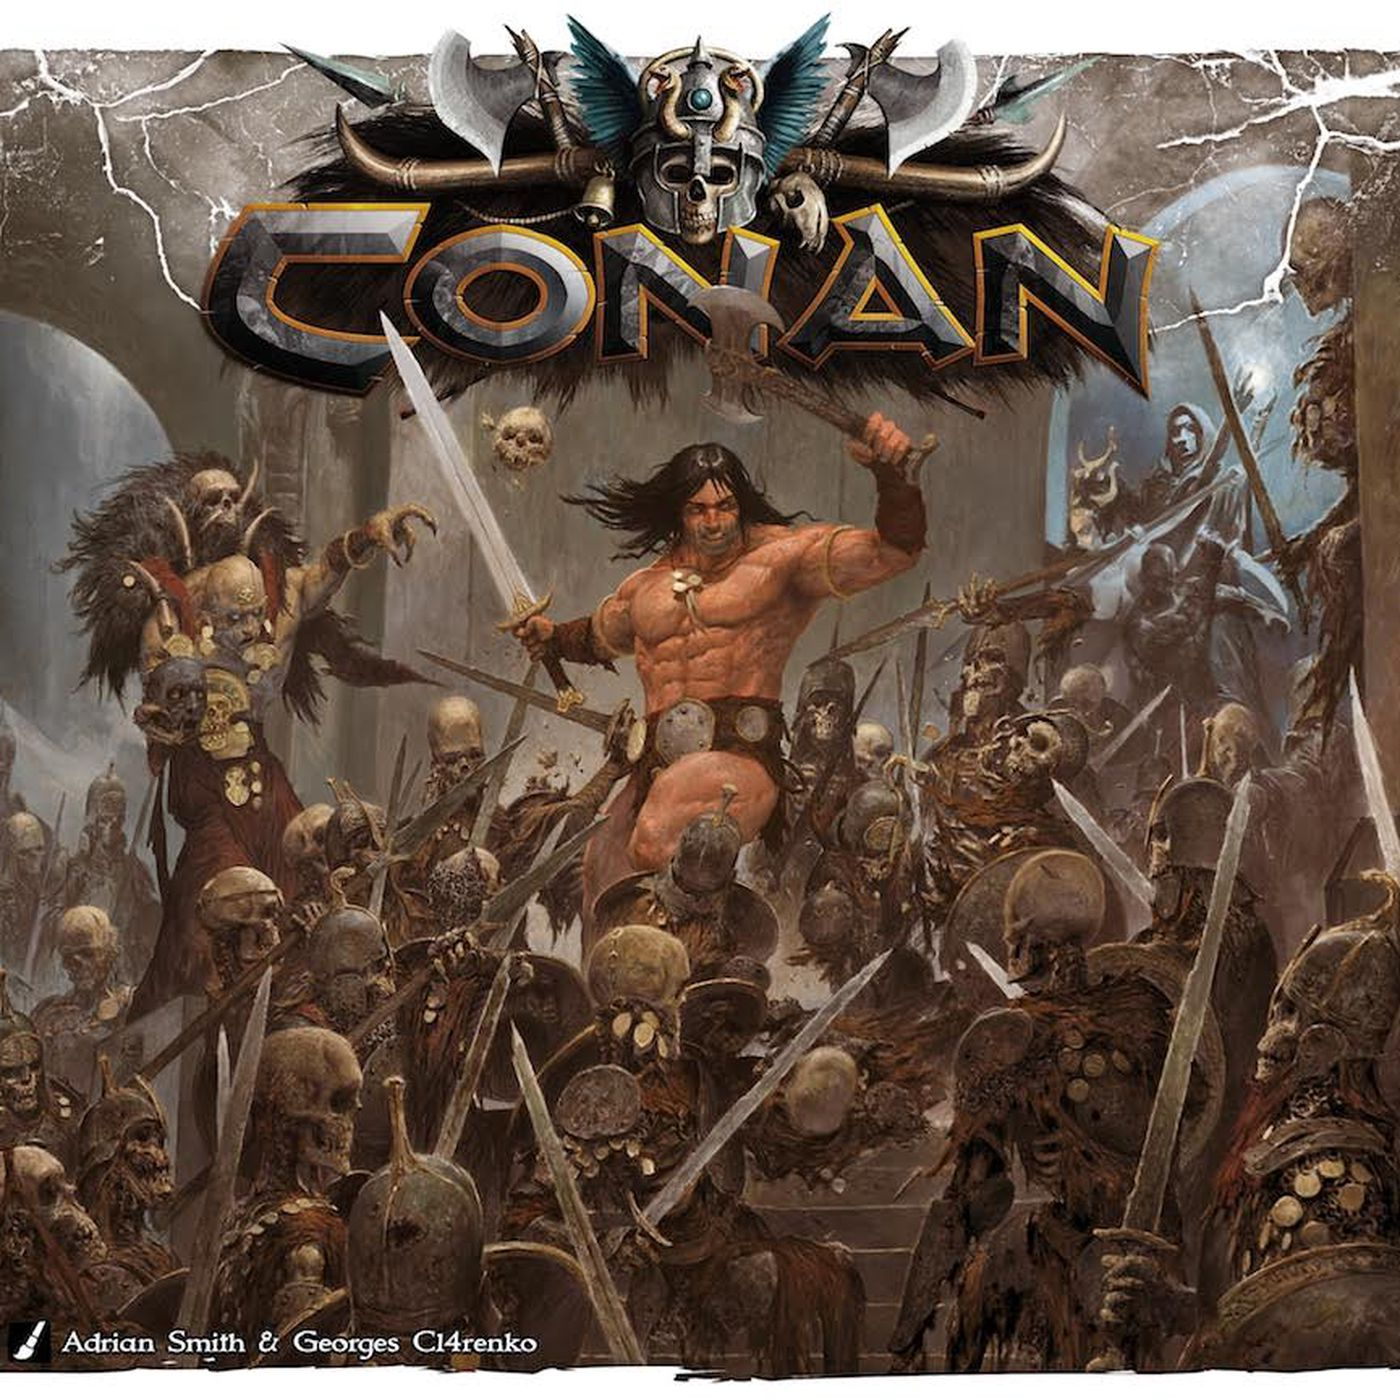 How Conan The Barbarian comes to life in three new games